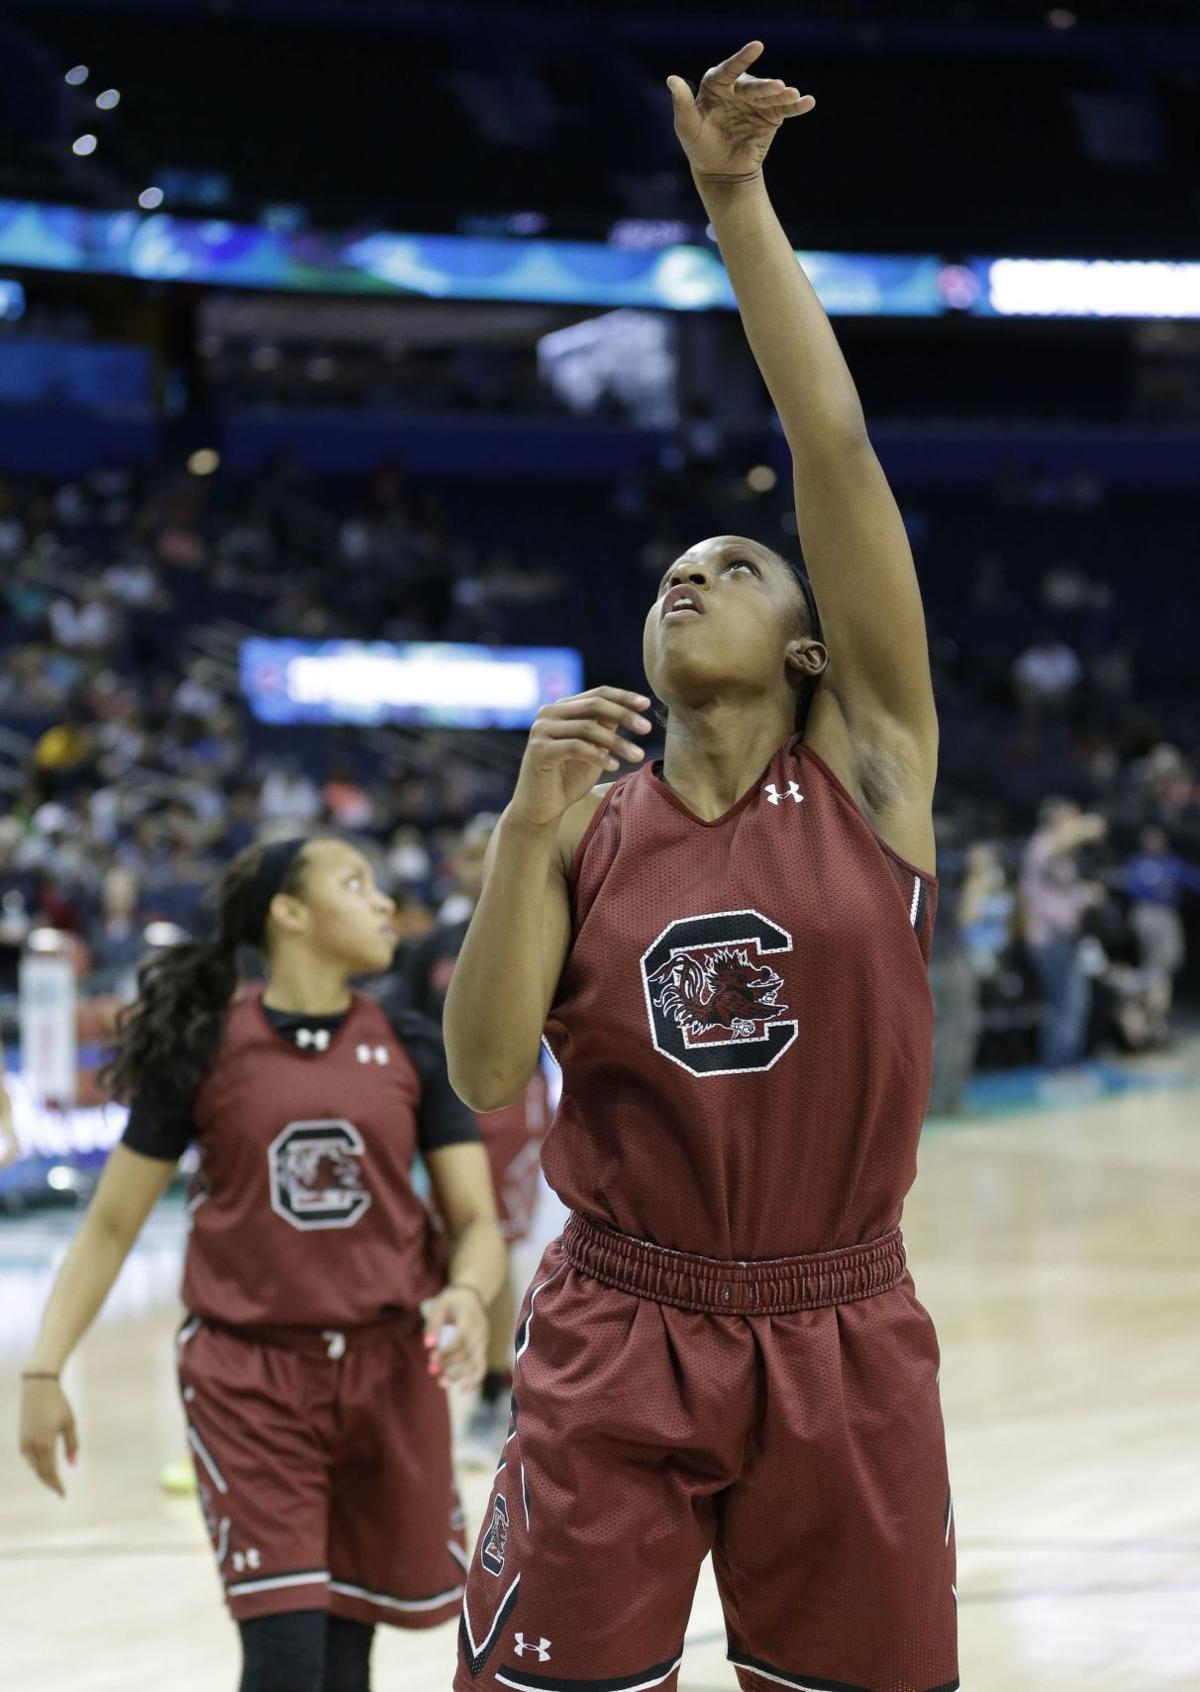 In Final Four, South Carolina's Mitchell receives her toughest job yet